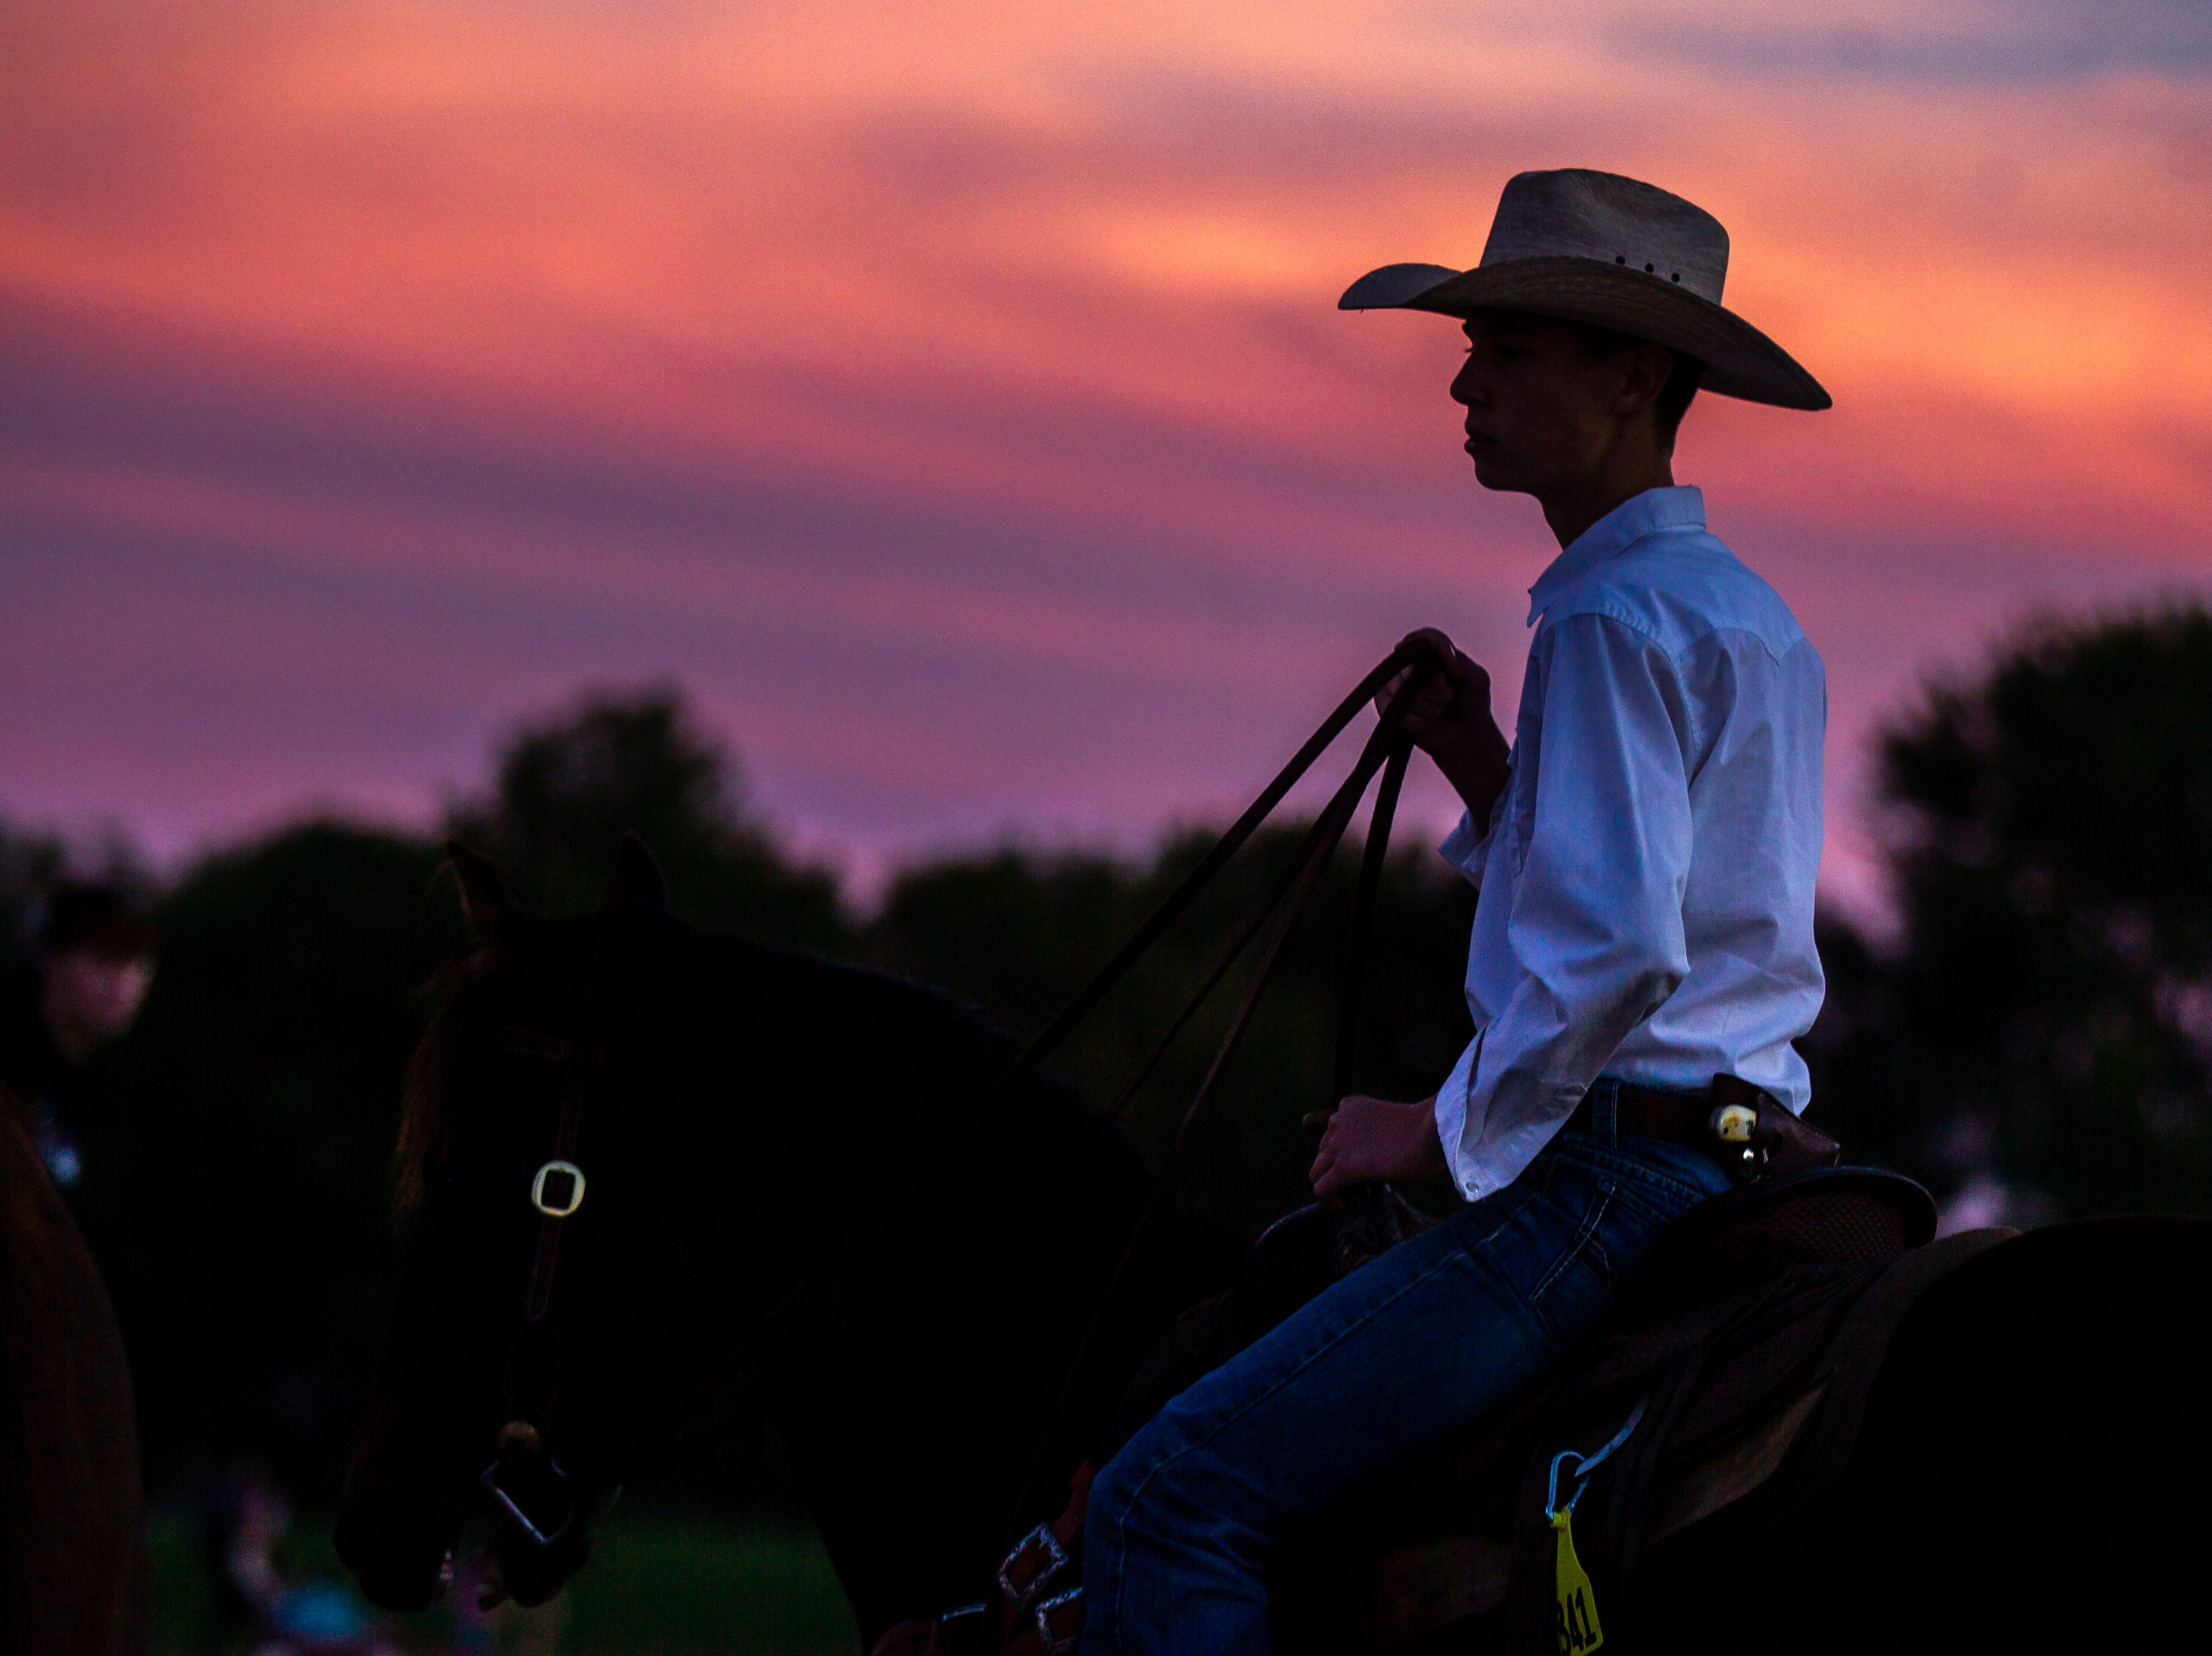 A student rides on a horse as the sun sets during Liberty's homecoming parade on Wednesday, Sept. 26, 2018, in North Liberty, Iowa.